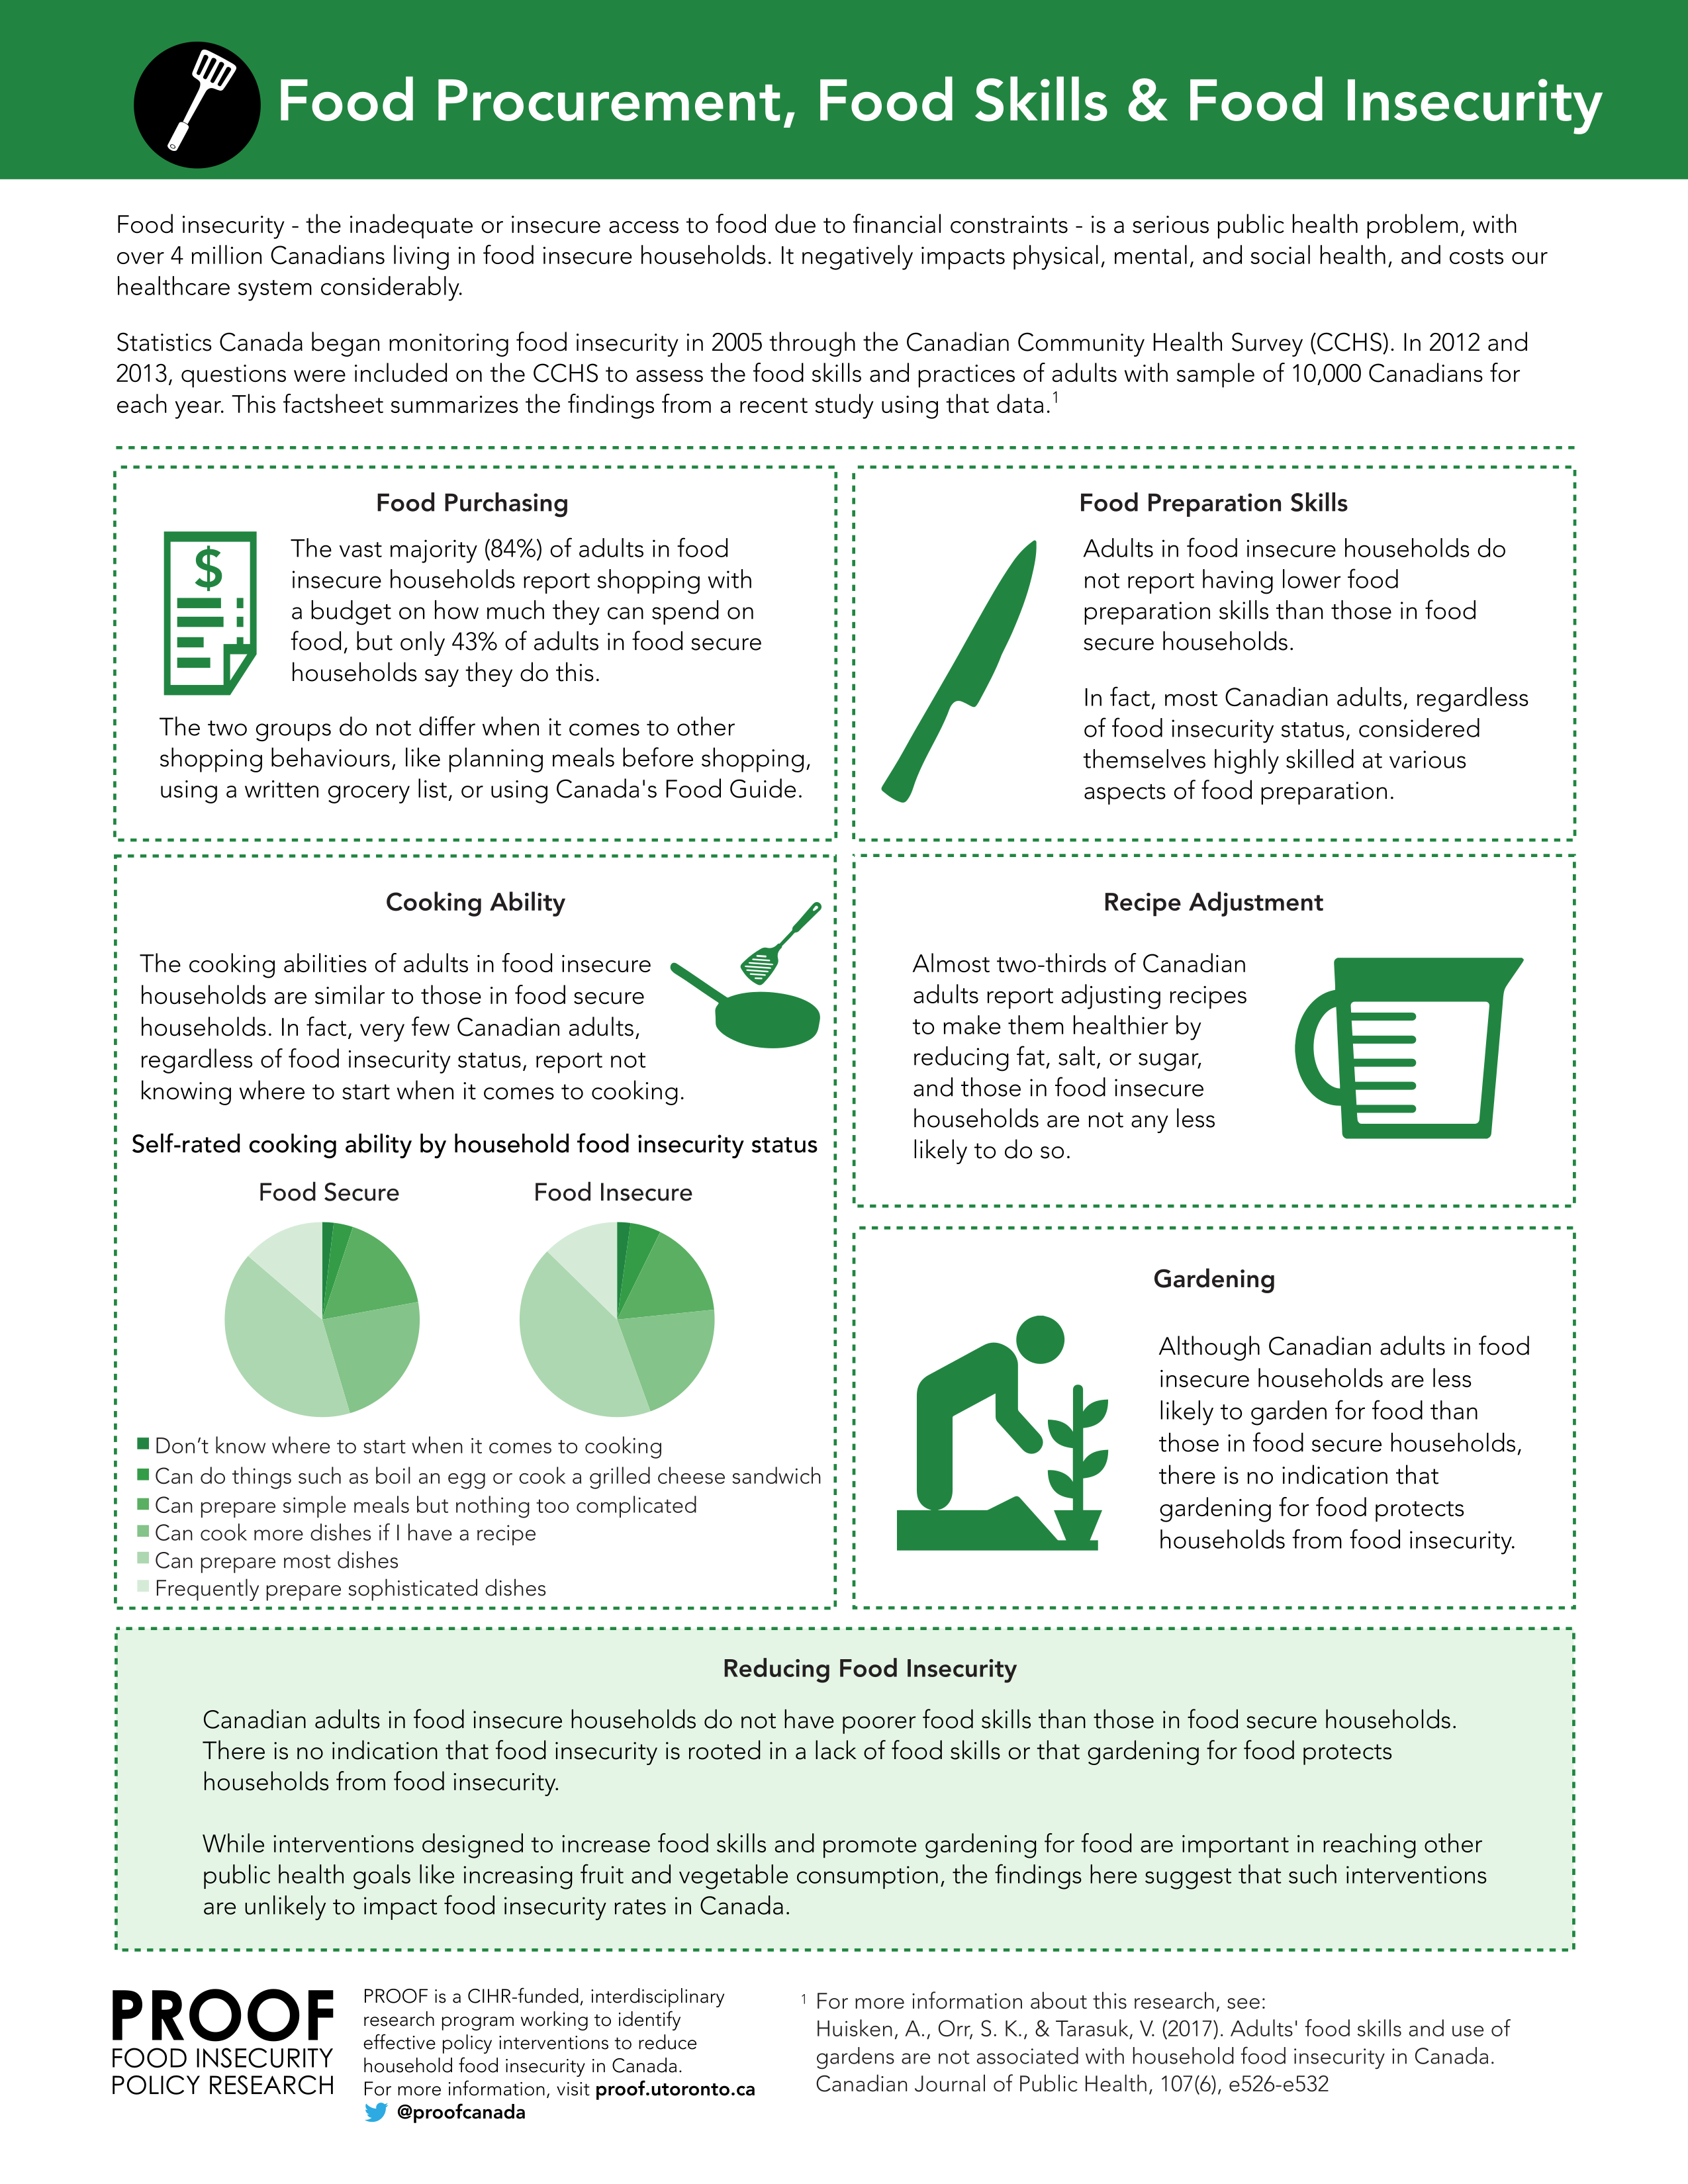 New fact sheet: Food Procurement, Food Skills & Food Insecurity